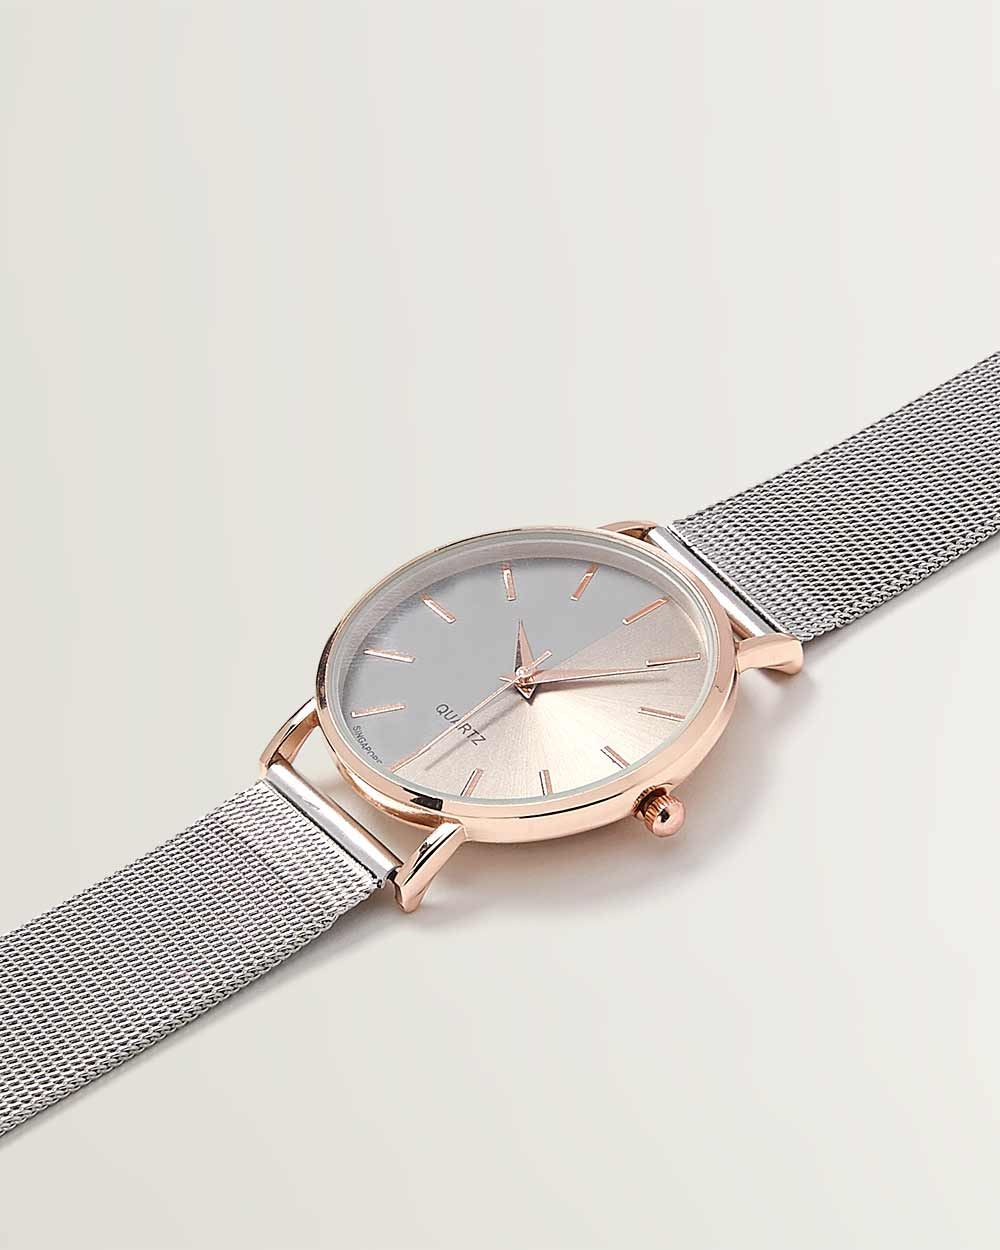 Silver & Rose Gold Watch with Mesh Band